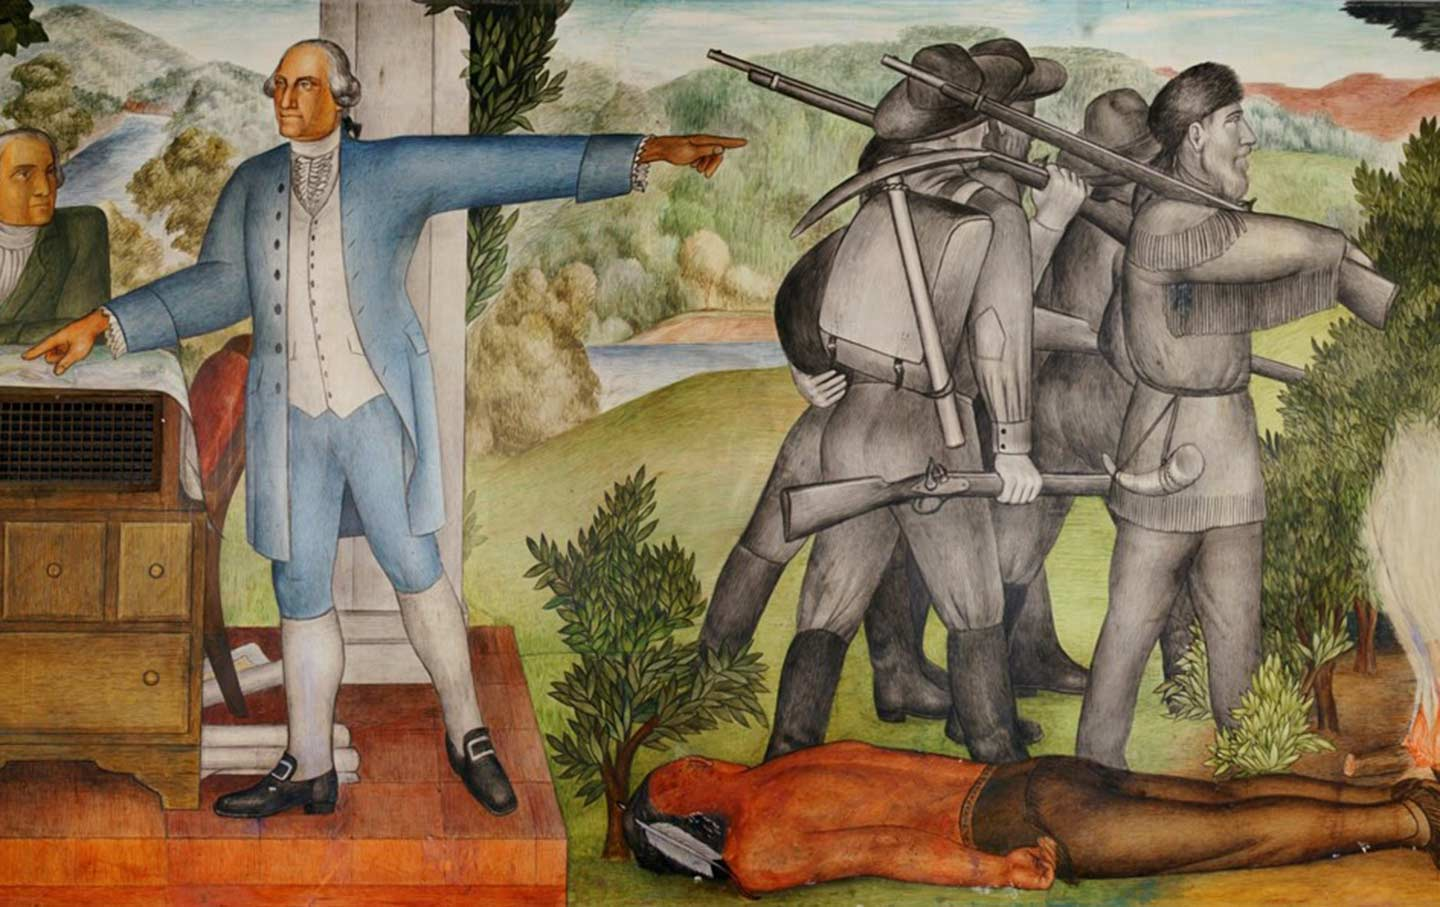 Black People Don't Need Murals To Remember Injustice | The Nation